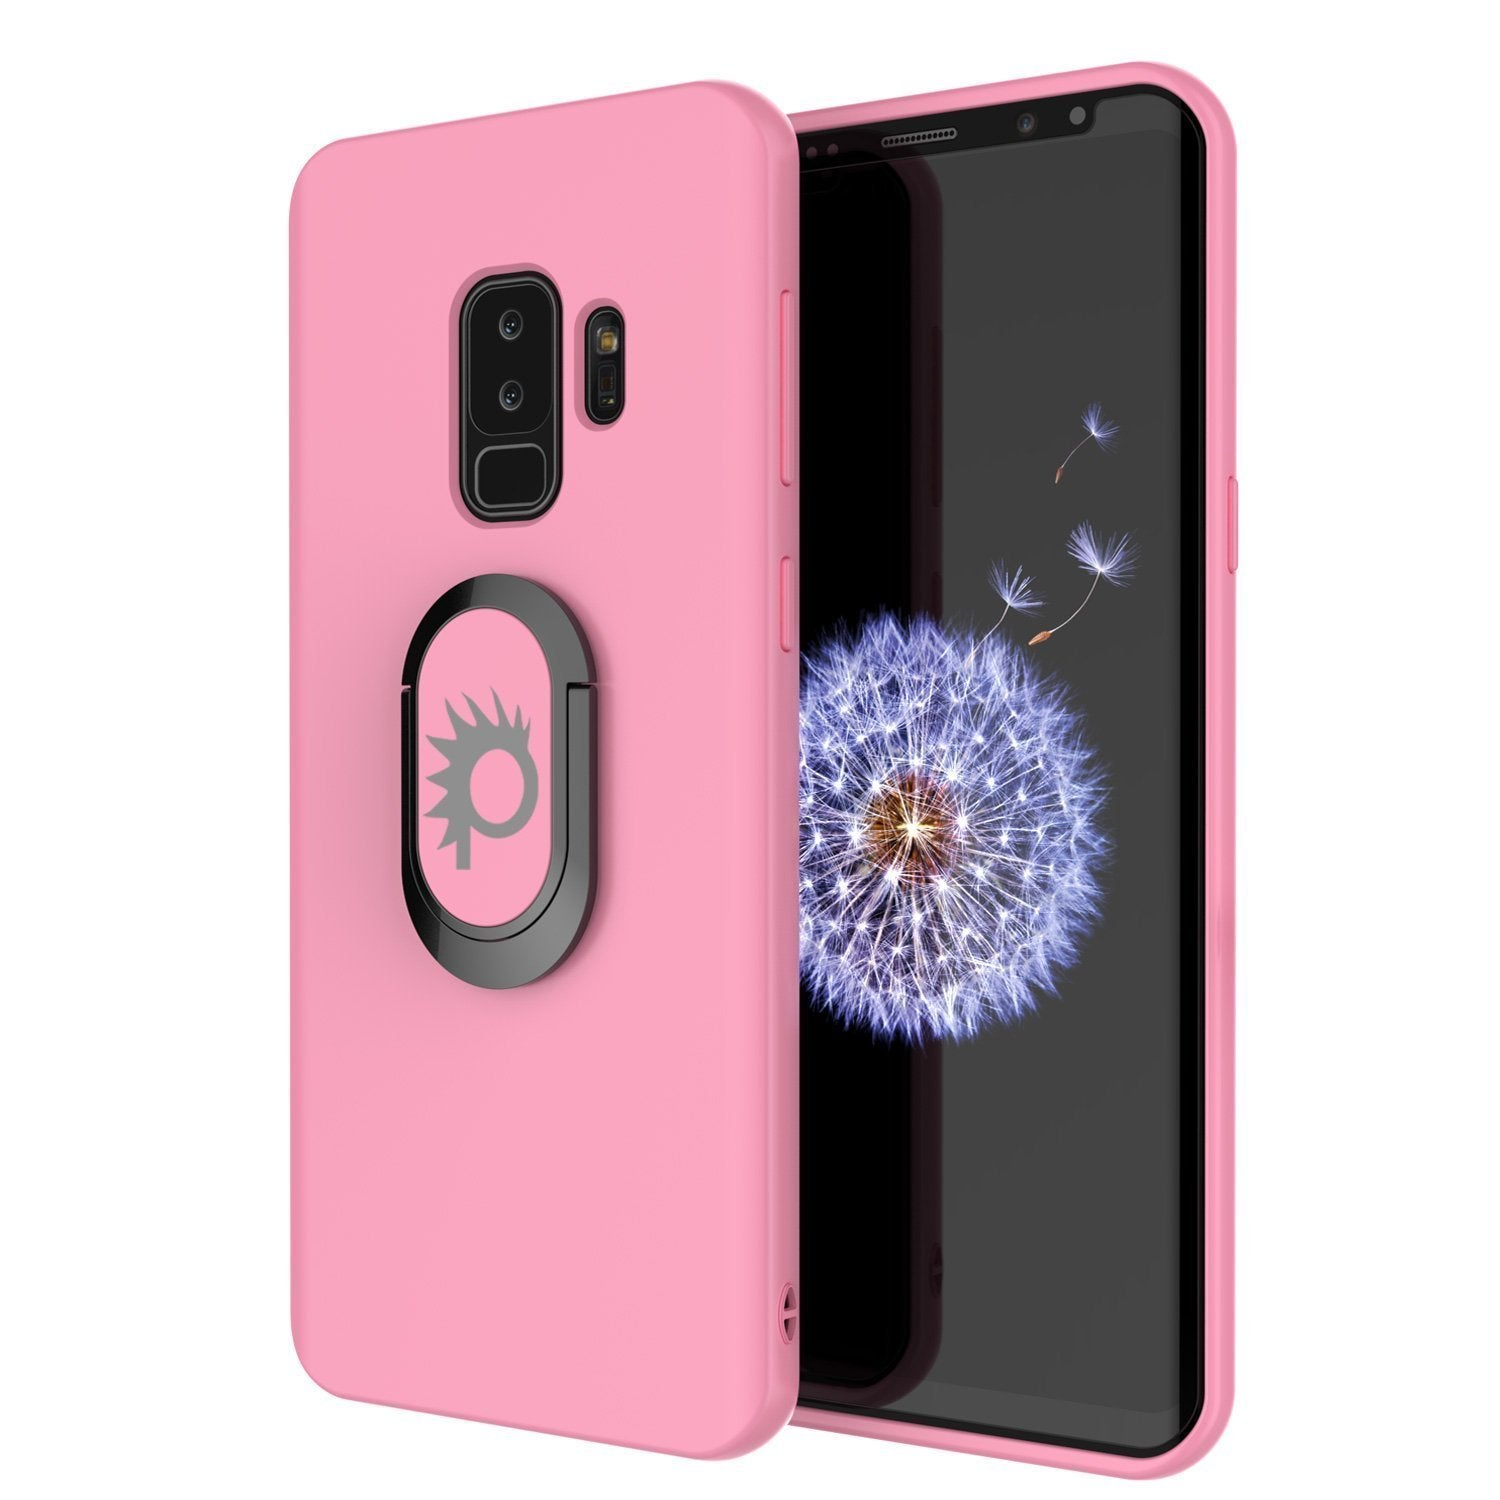 Galaxy S10+ Plus, Punkcase Magnetix Protective TPU Cover W/ Kickstand, Sceen Protector[Pink]